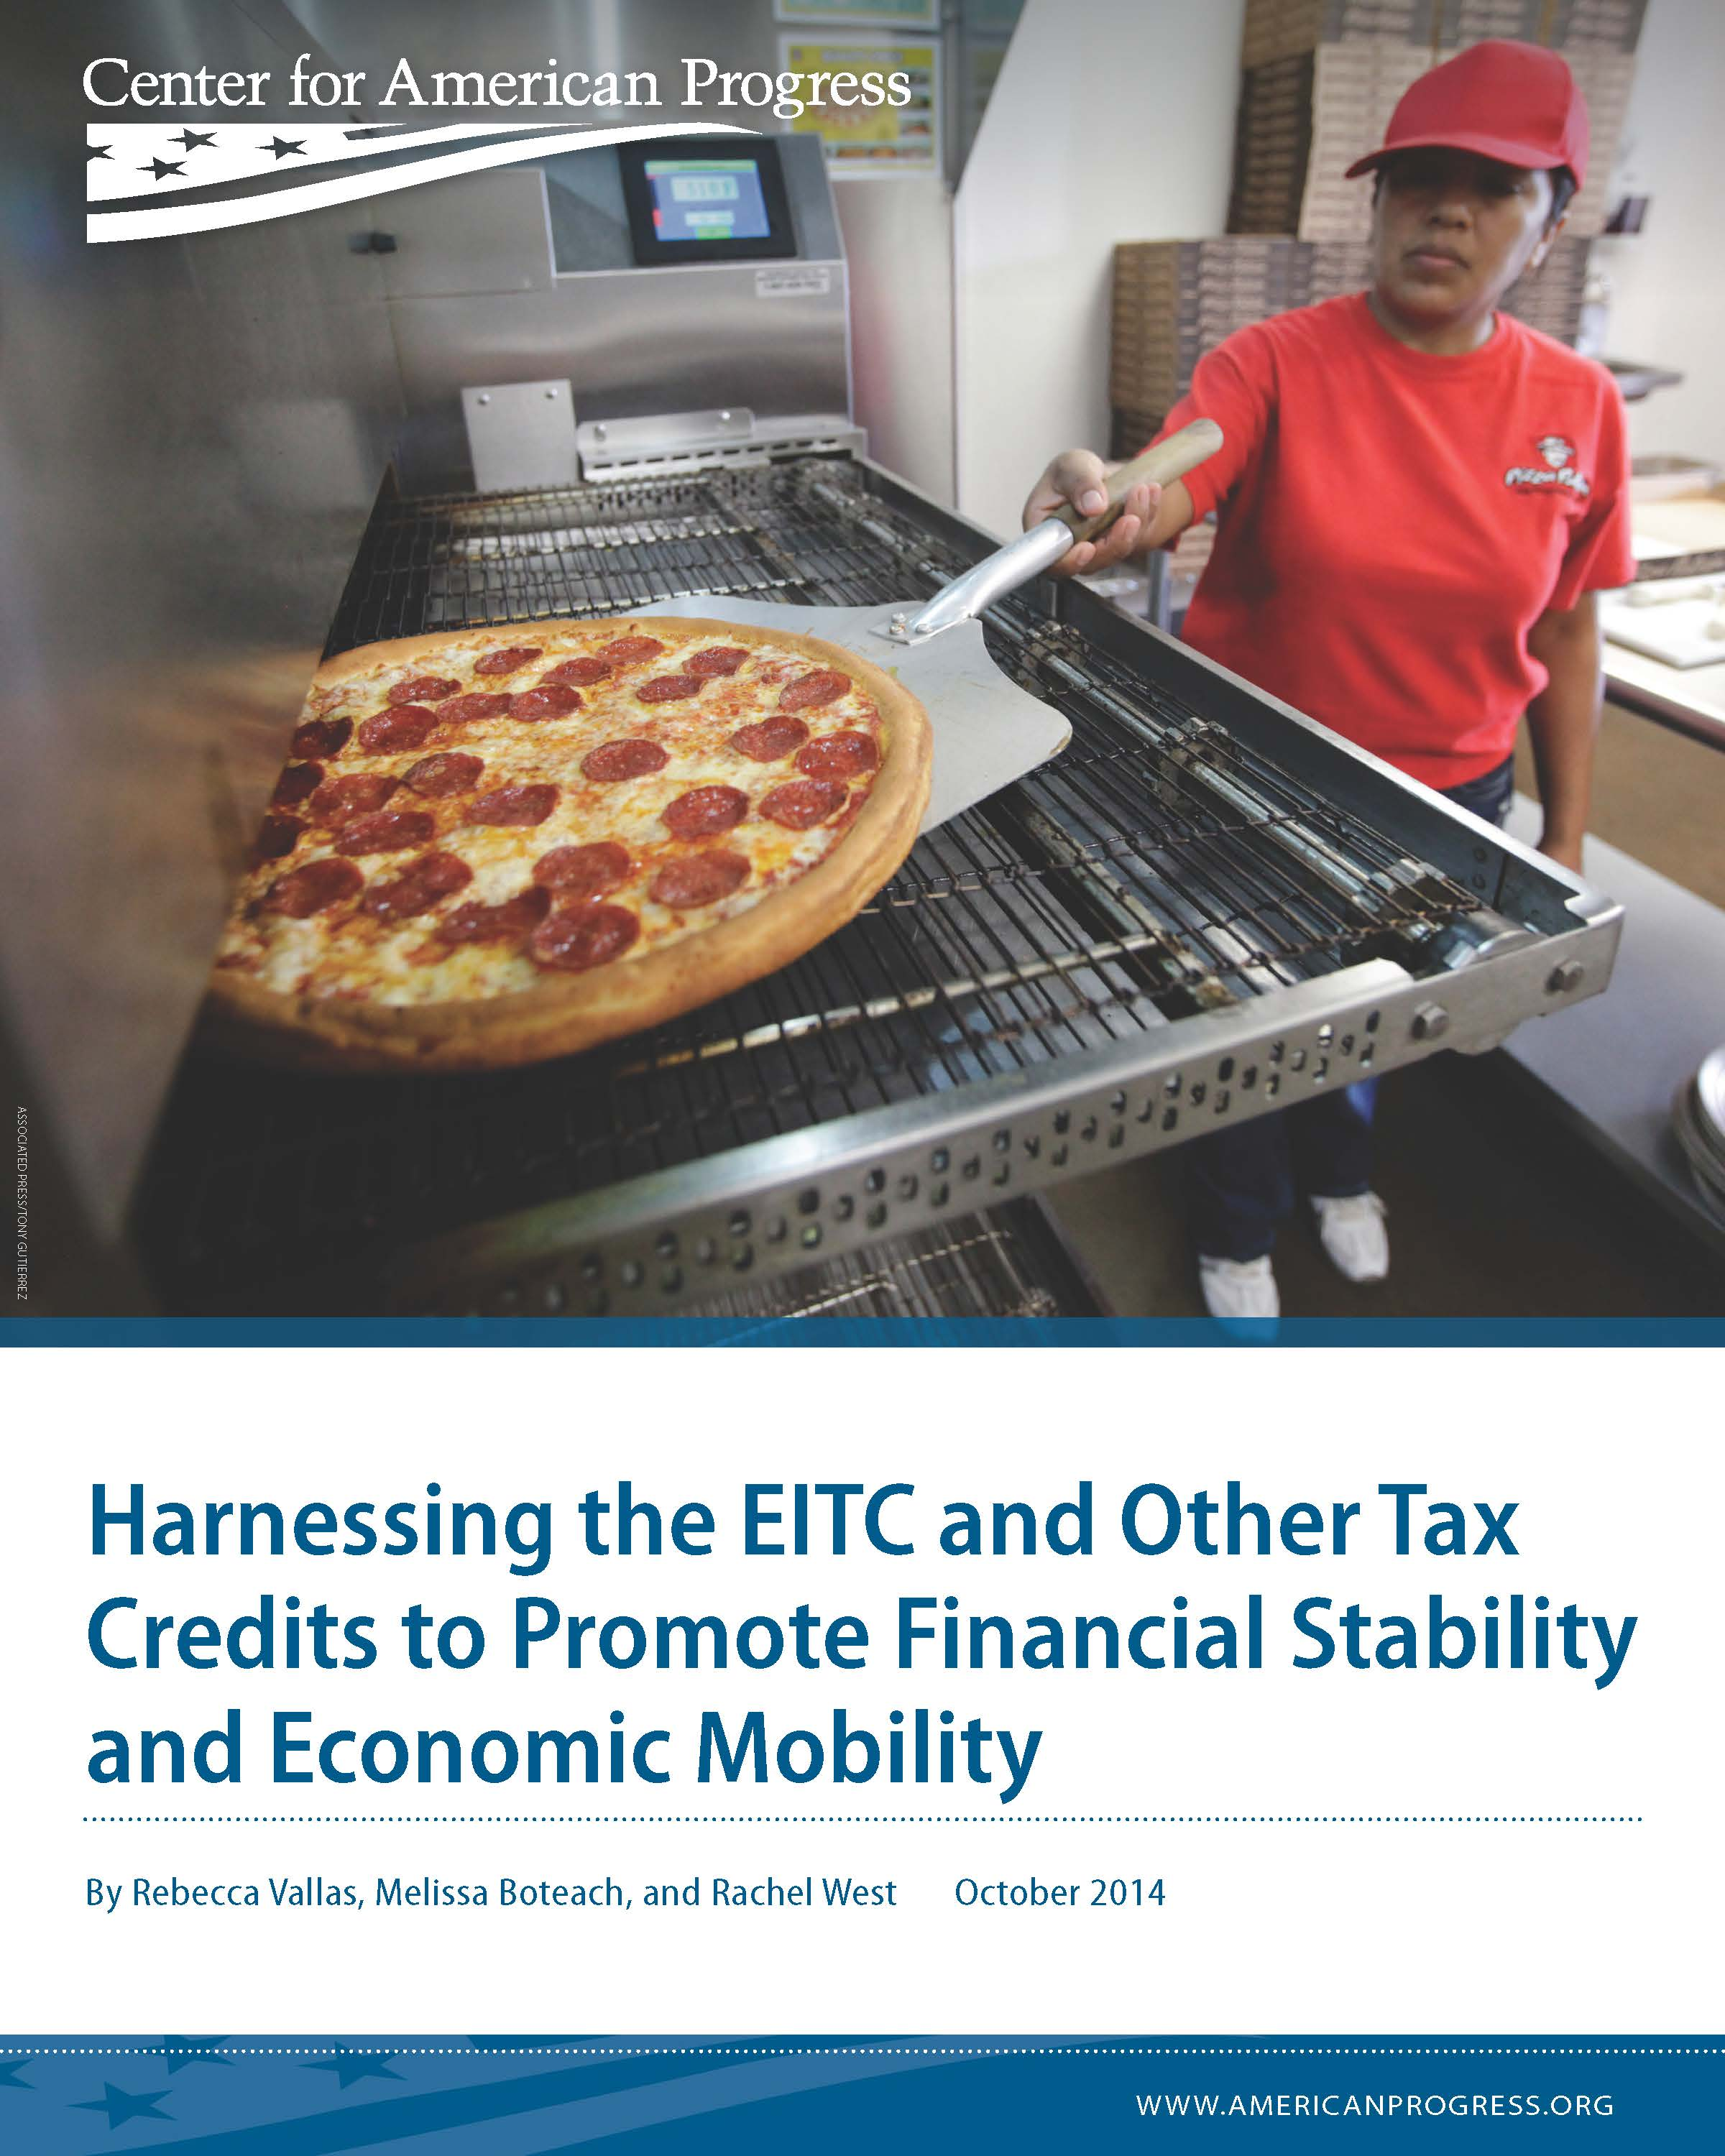 Harnessing the EITC and Other Tax Credits to Promote Financial Stability and Economic Mobility